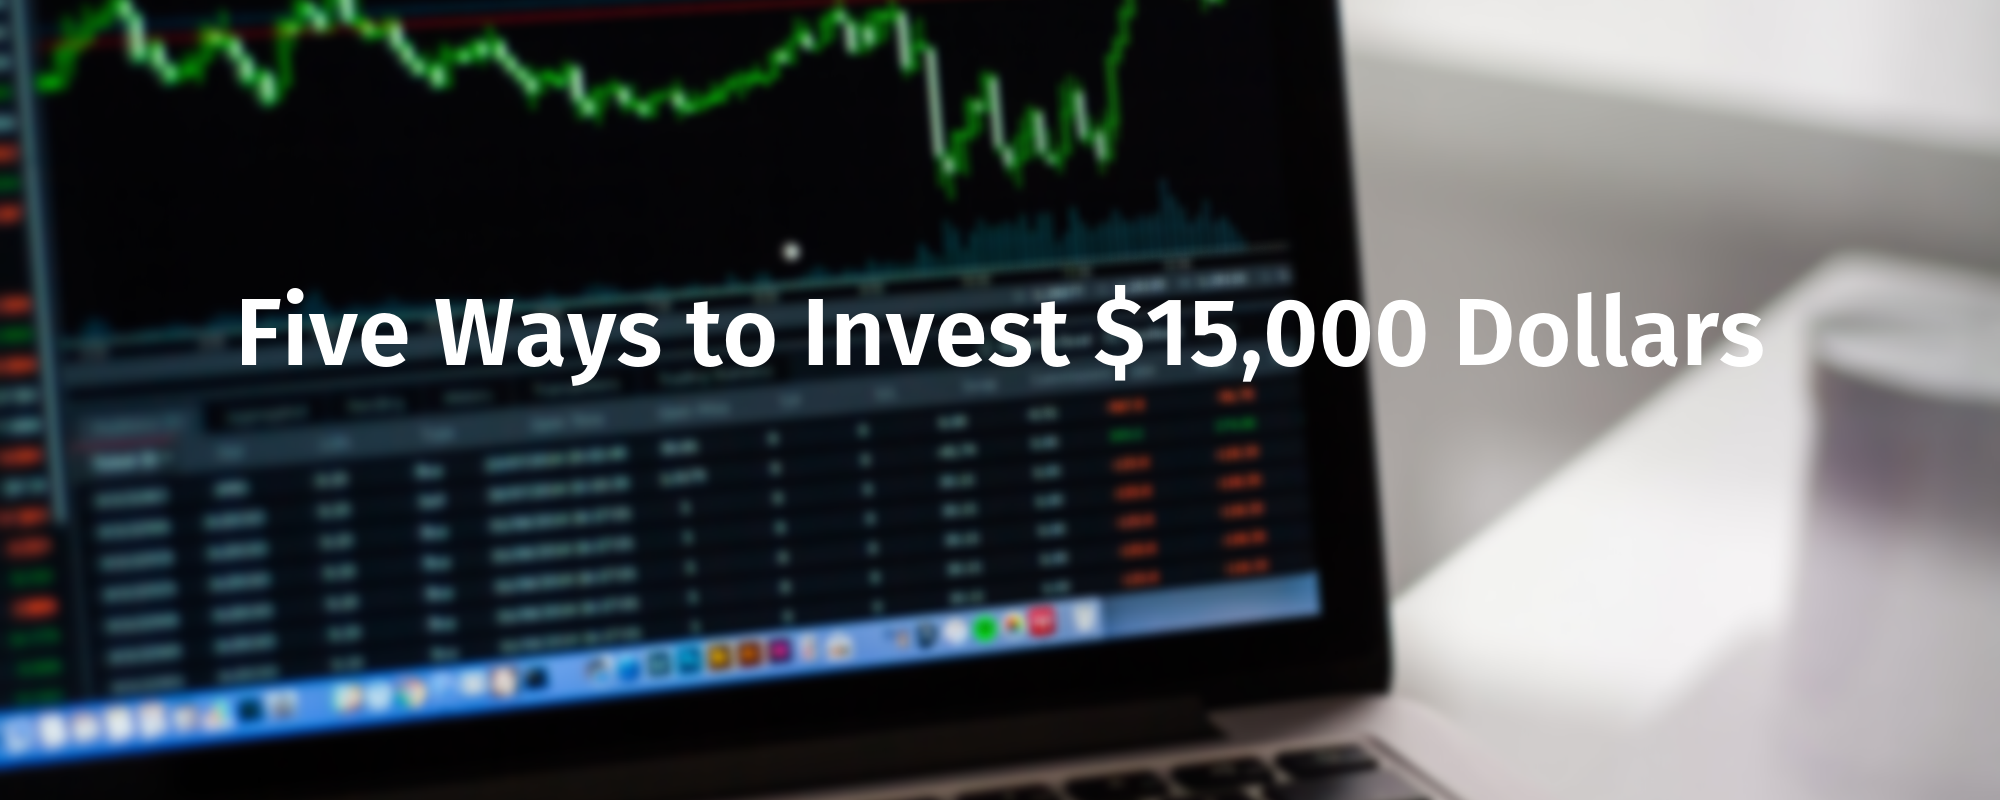 Five Ways to Invest $15,000 Dollars